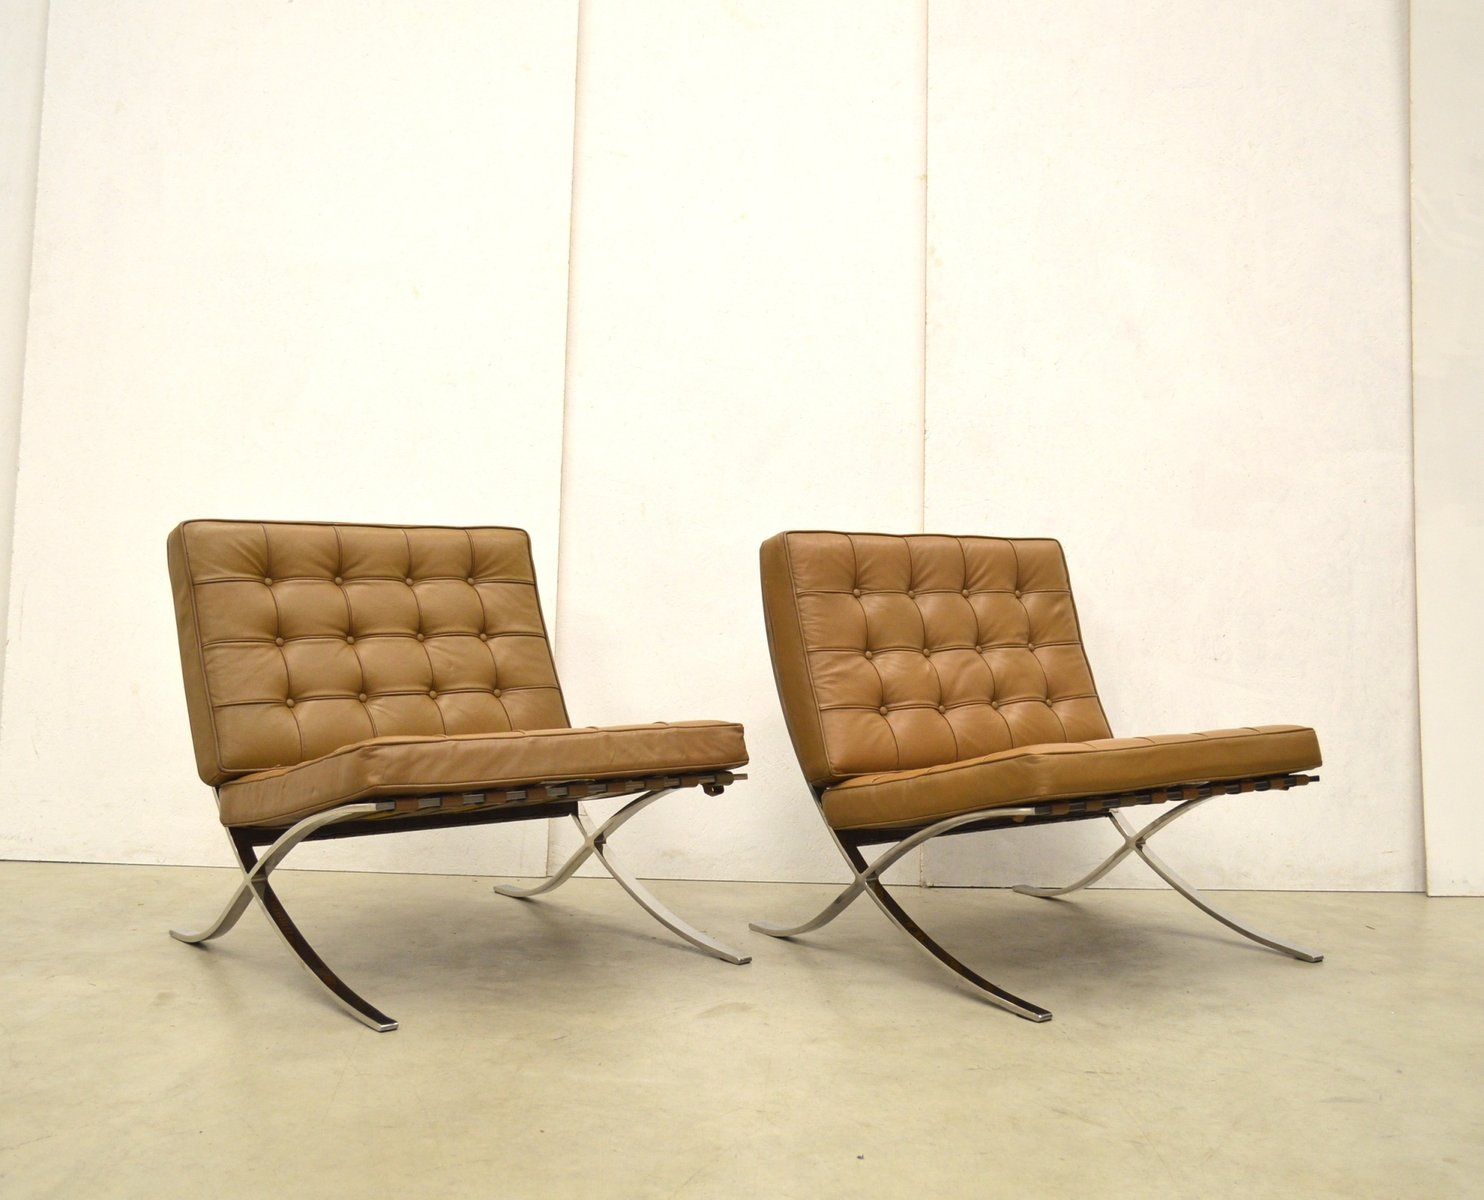 Brown Barcelona Chair By Ludwig Mies Van Der Rohe For Knoll 1960s